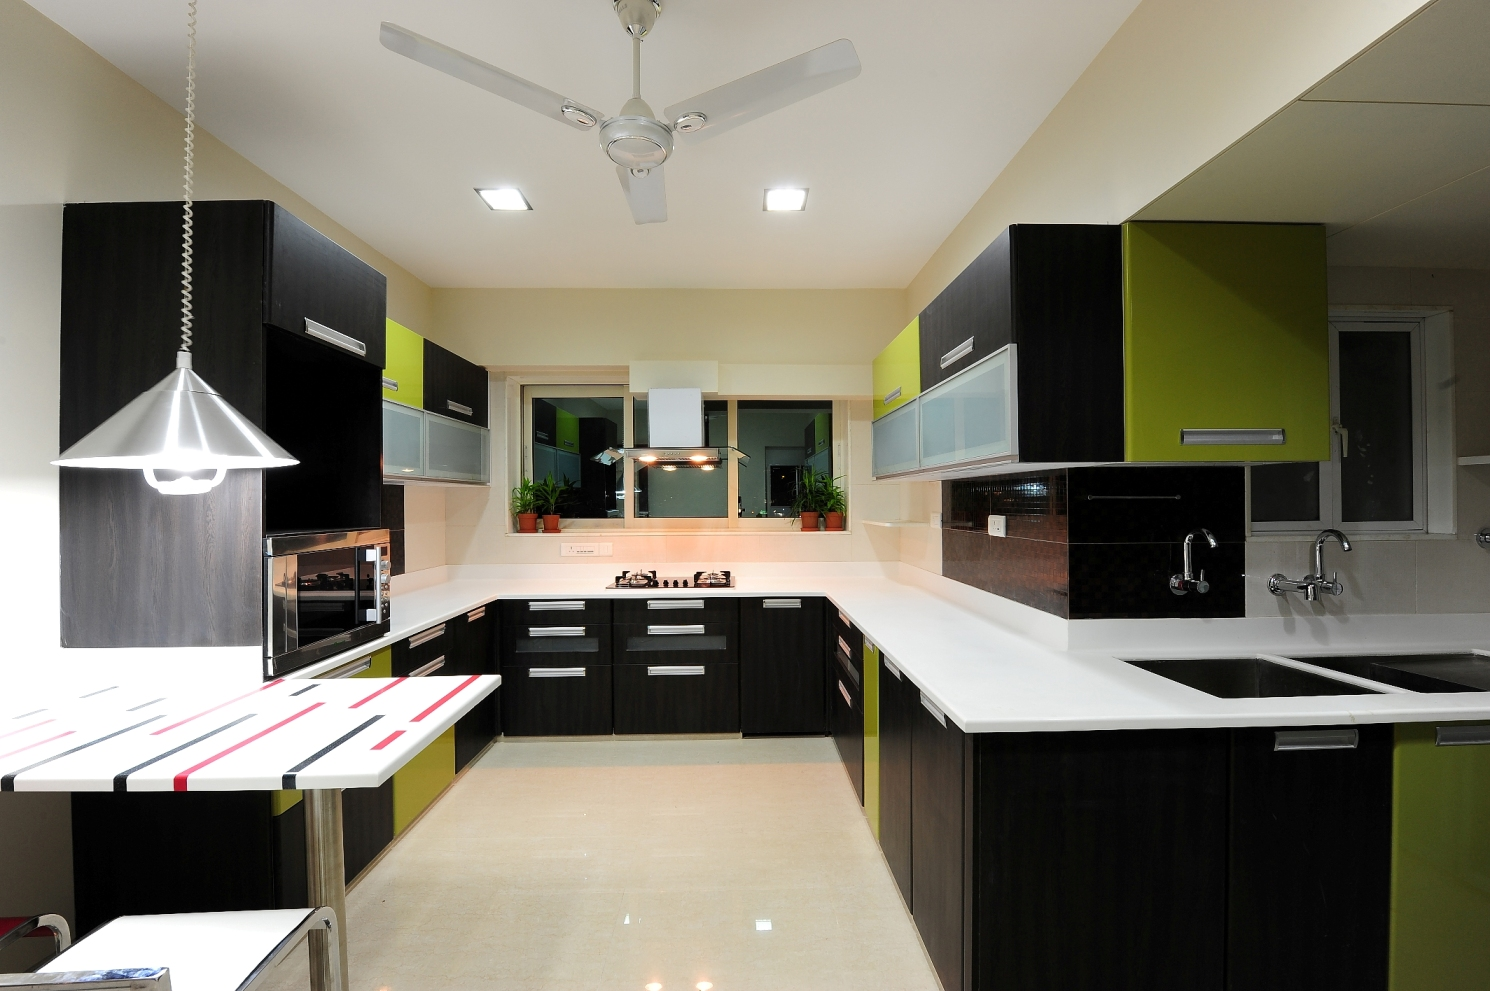 Design of a kitchen by architecture design art pvt ltd jacpl for Architectural design kitchens